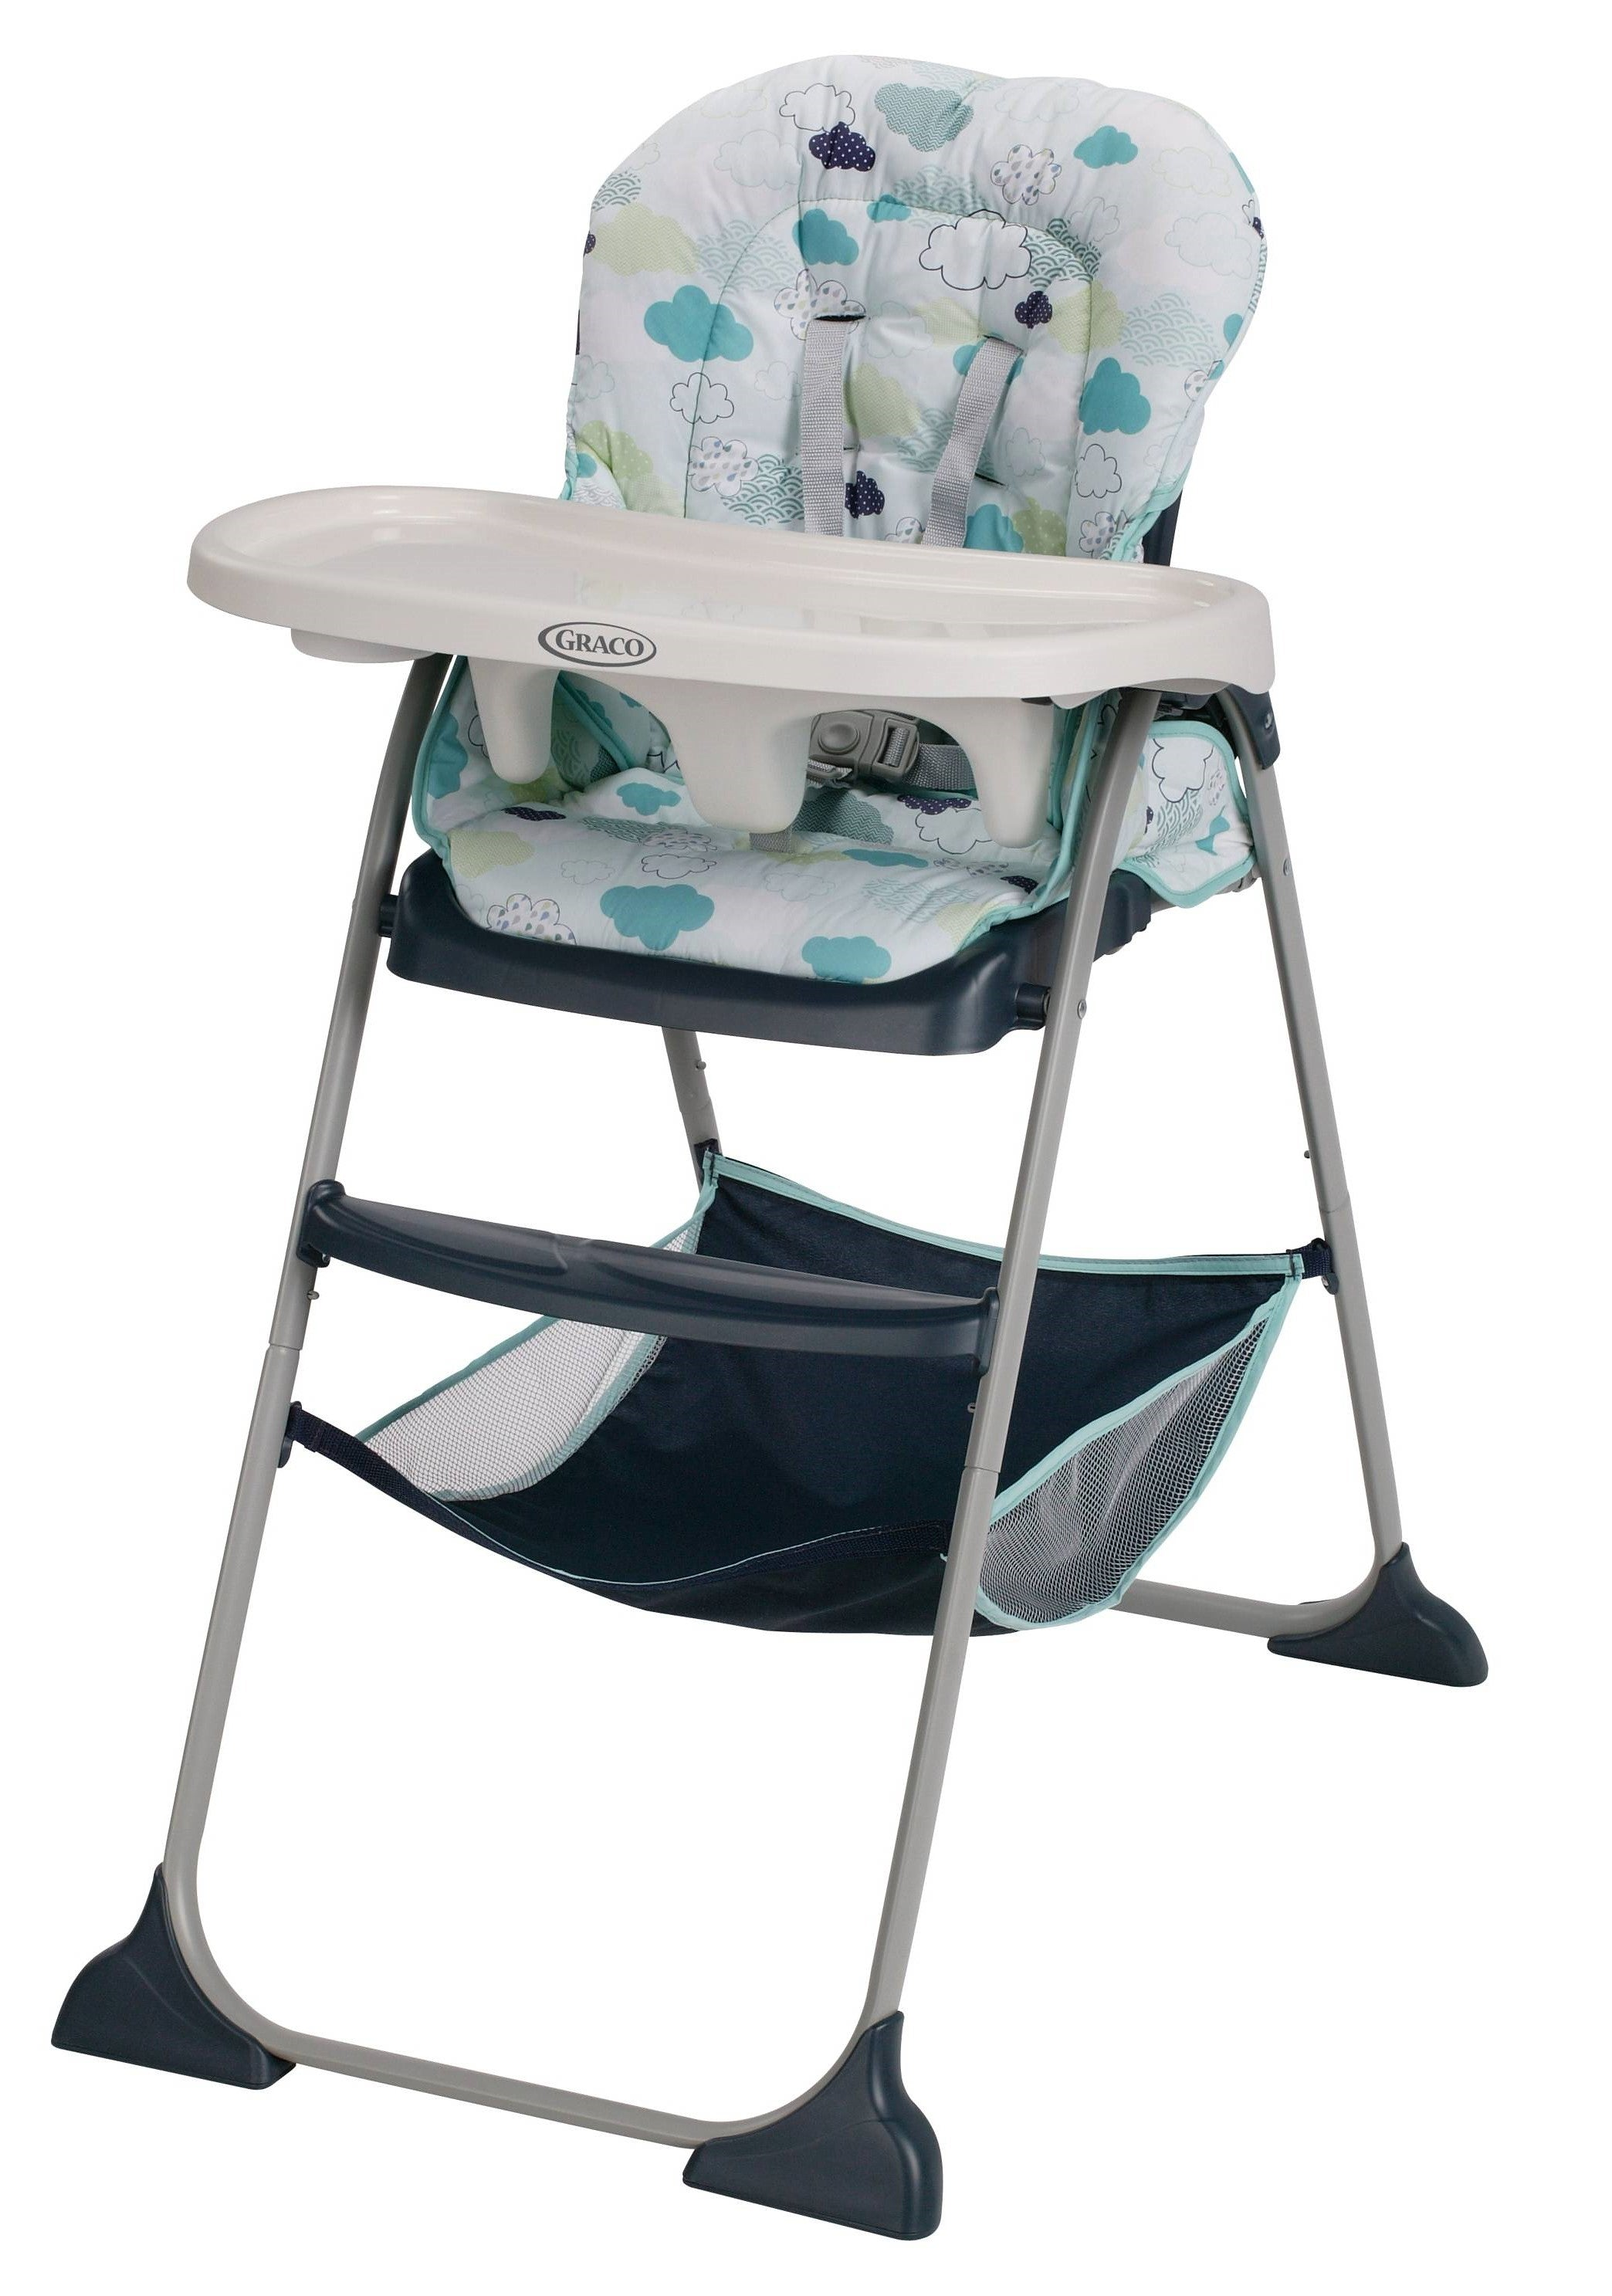 Graco Slim Snacker High Chair in Stratus – Give10Back